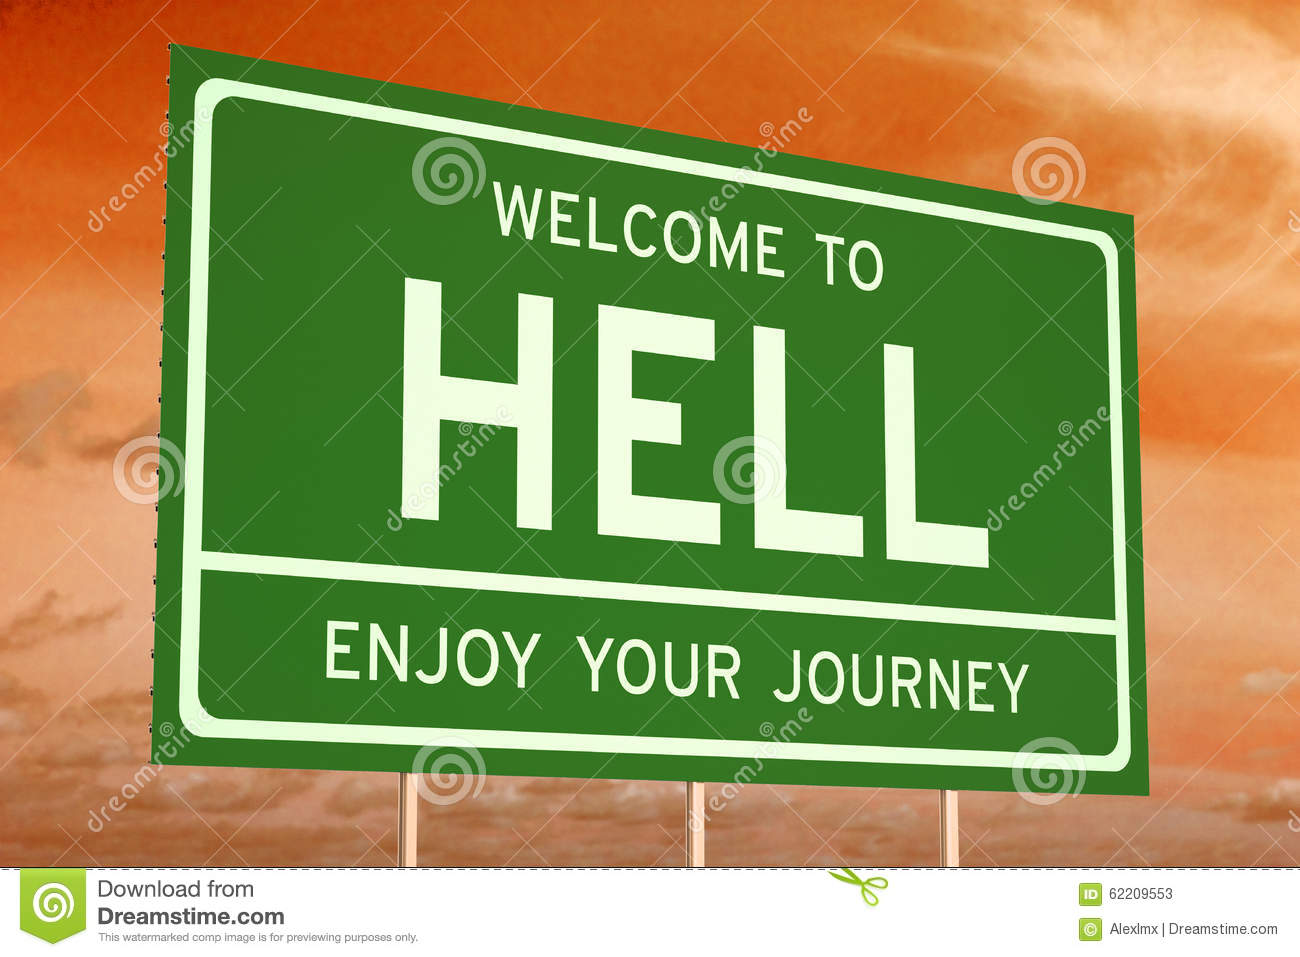 [Image: welcome-to-hell-concept-road-billboard-62209553.jpg]